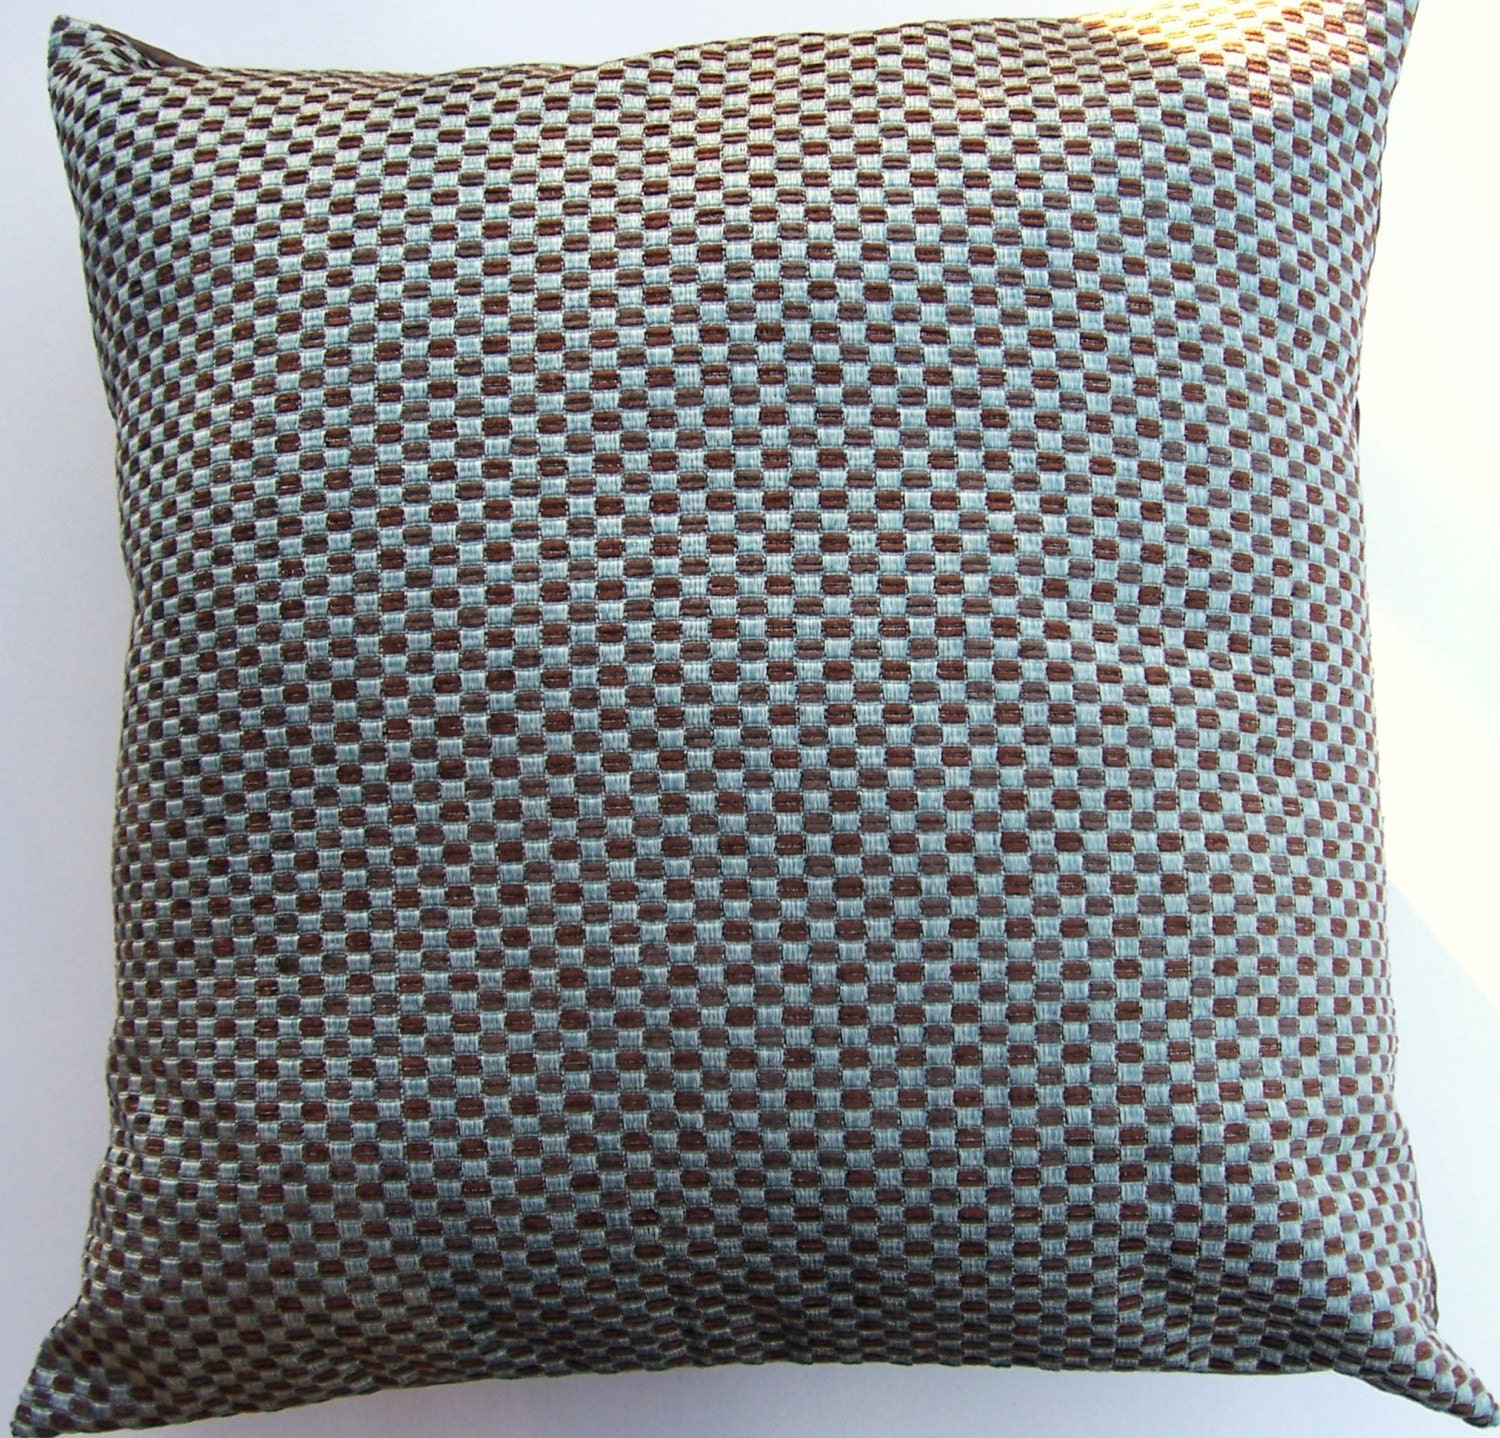 Blue And Brown Decorative Pillow Cover : Spa Blue and Brown Throw Pillow Cover Woven Cushion Cover